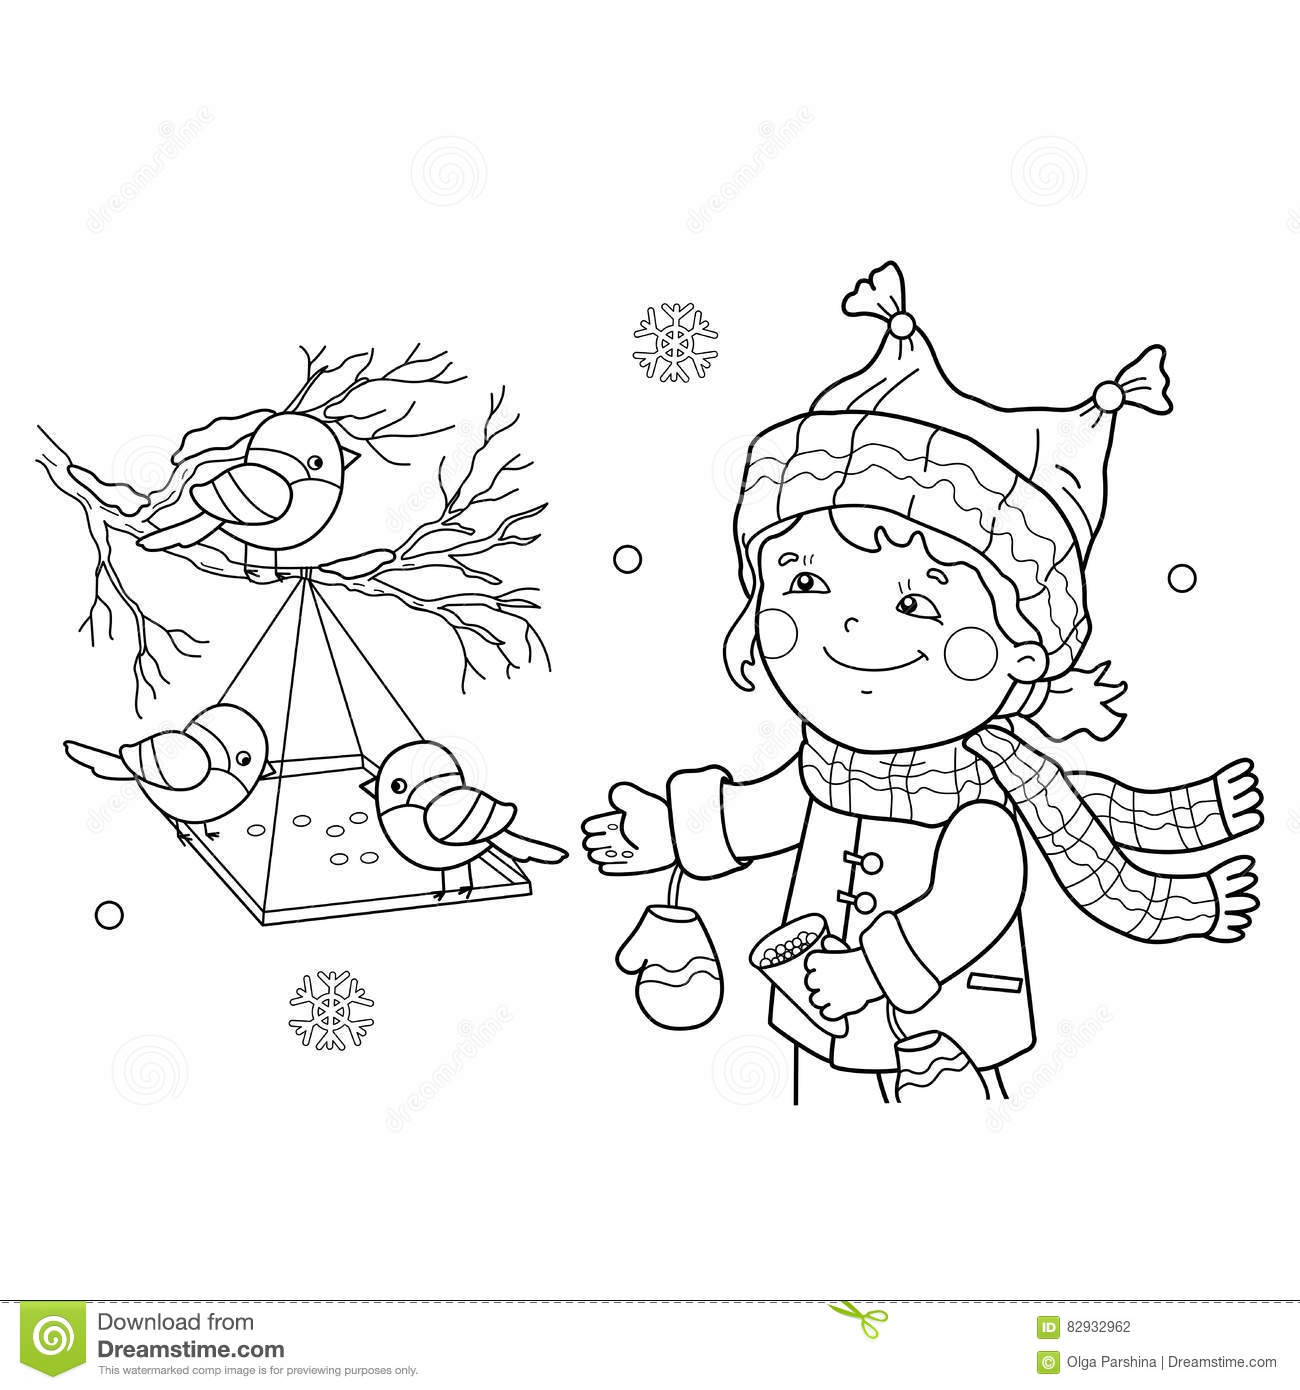 Download Coloring Page Outline Of Cartoon Girl Feeding Birds Bird Feeder Stock Vector